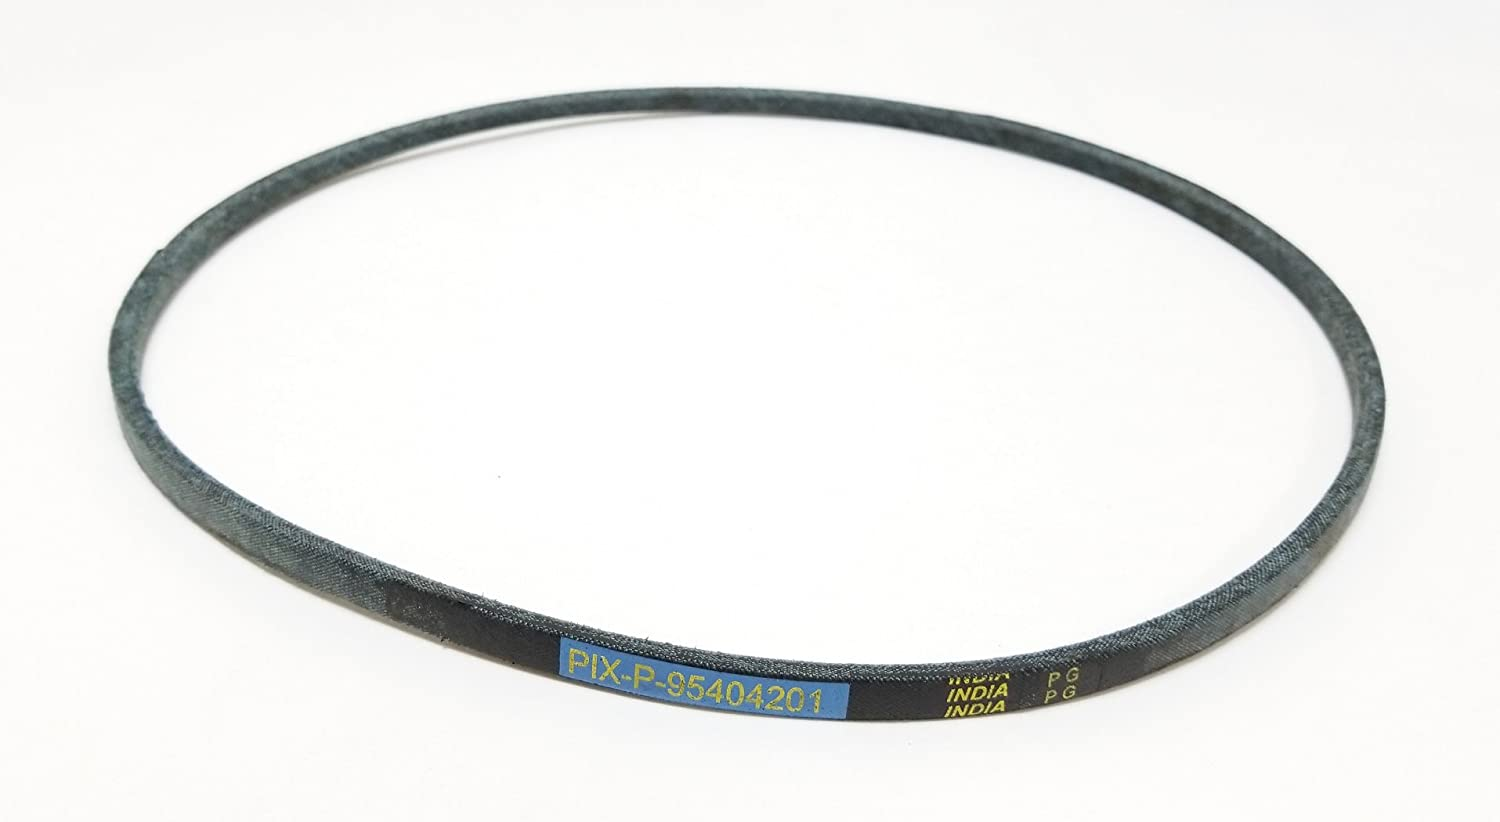 Pix Belt Made To FSP Specifications Replaces MTD Cub Cadet Snow Thrower Belt Part Number 954-04201A, 754-04201, 954-04201